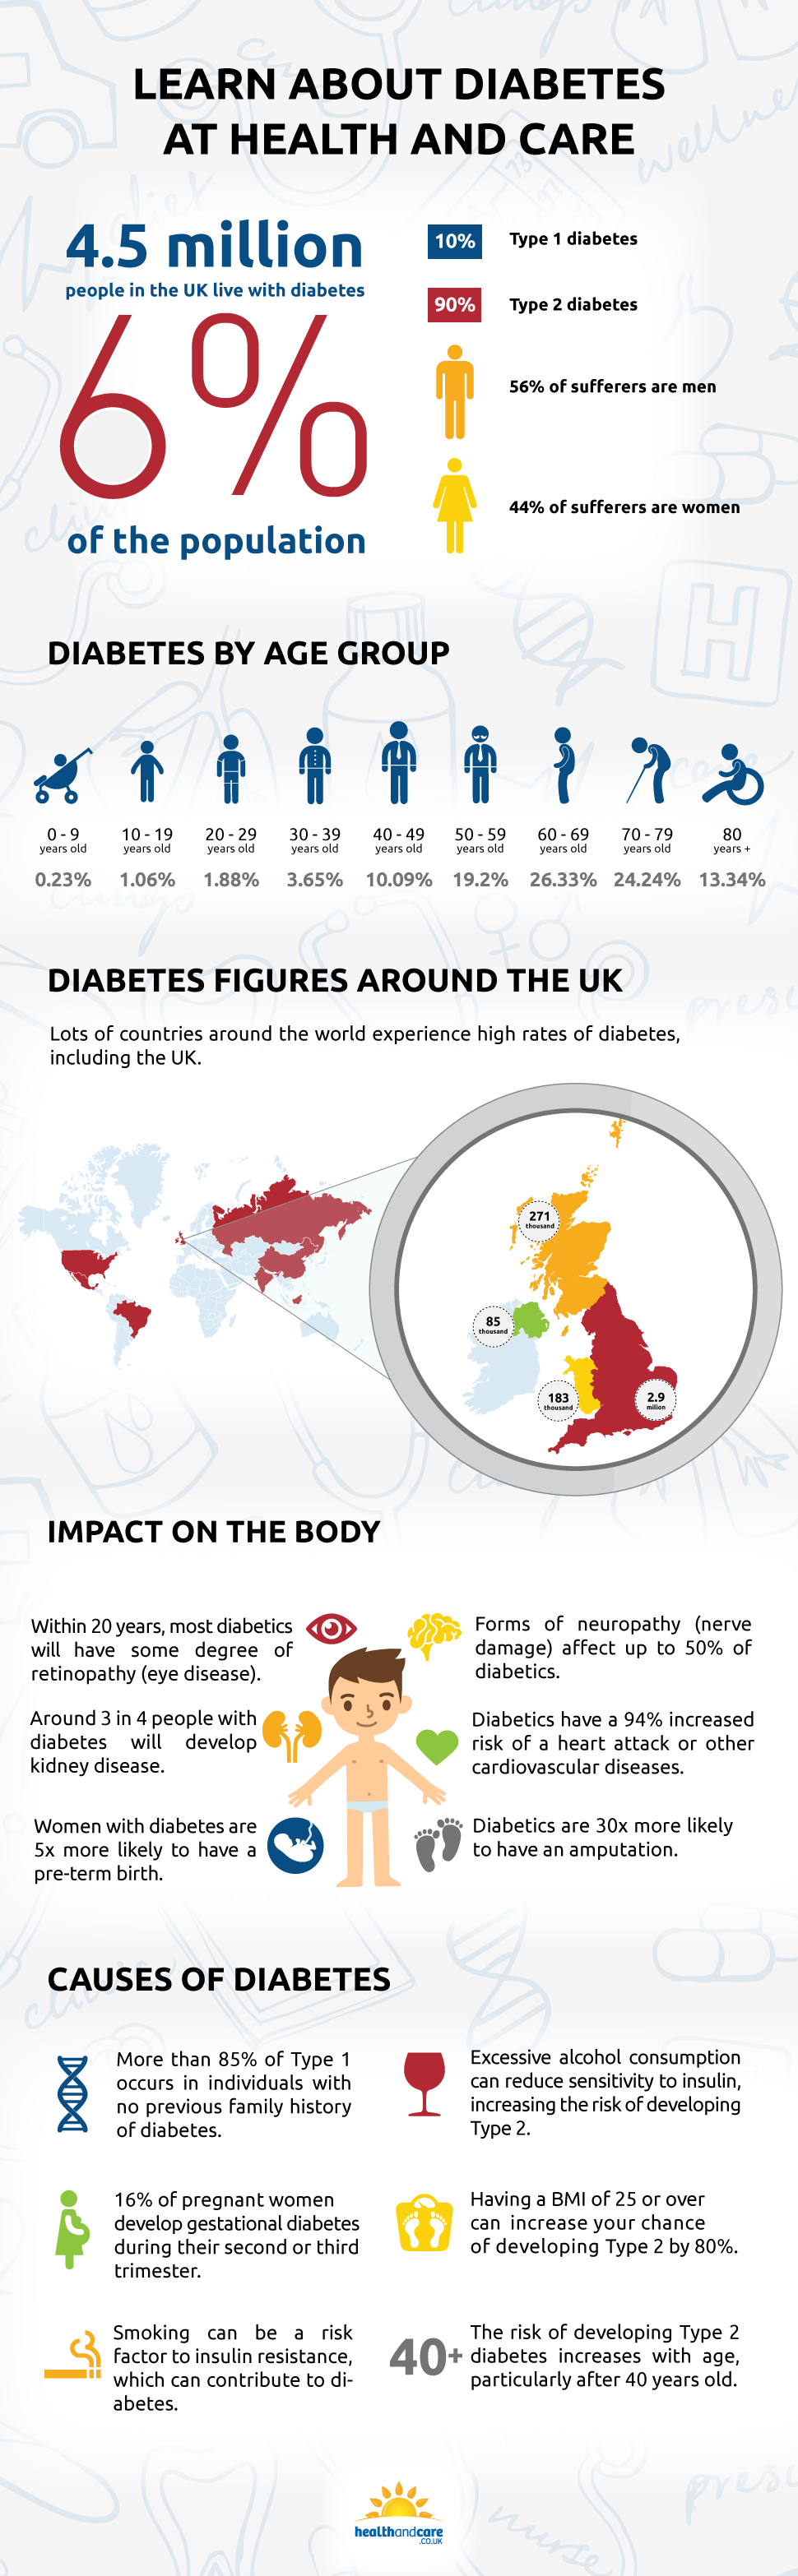 Learn About Diabetes at Health and Care